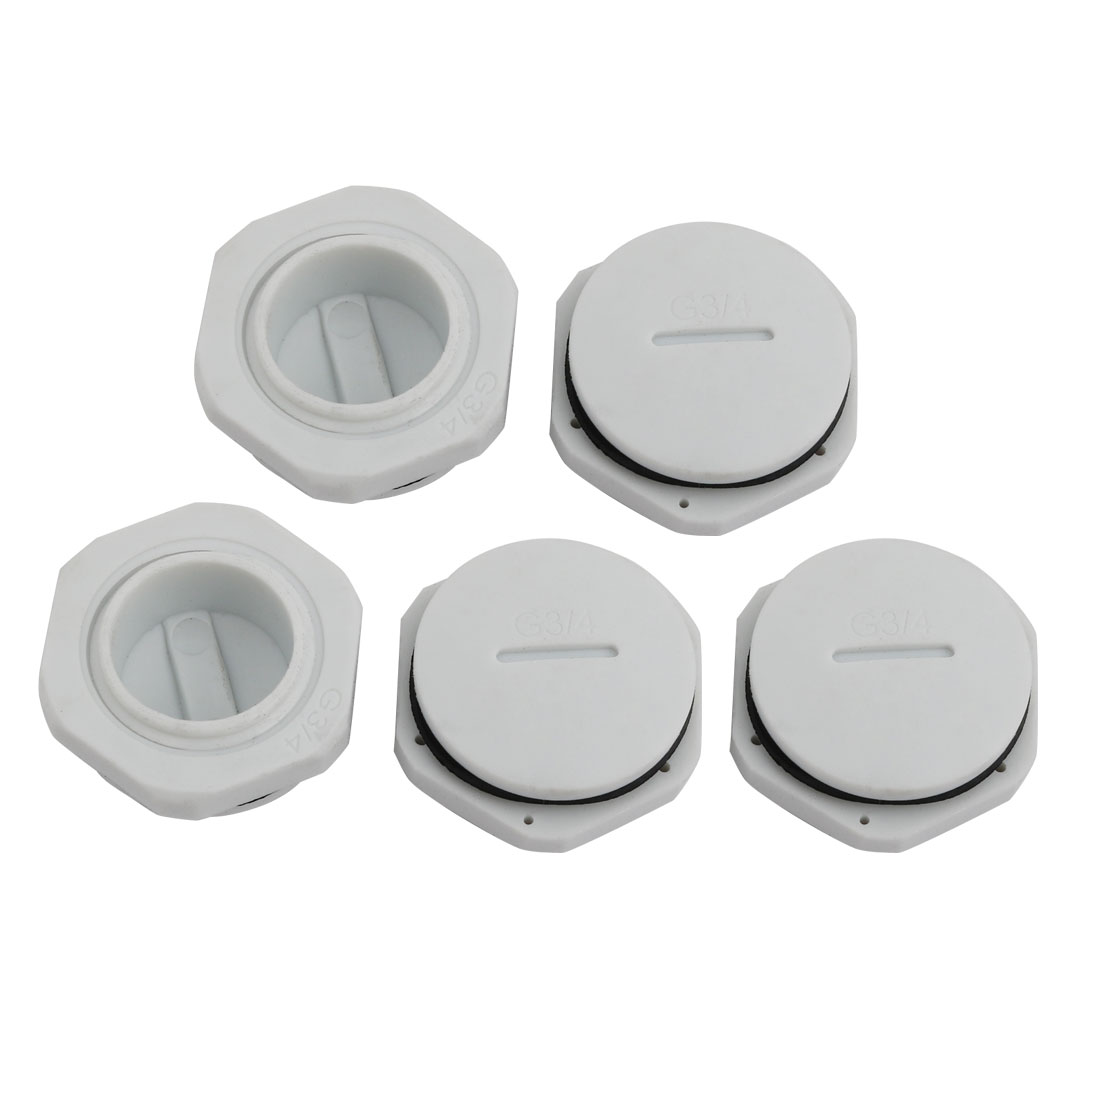 5pcs GLW-G 3/4 Nylon Threaded Cable Gland Cap Round Screw-in Cover Gray w Washer